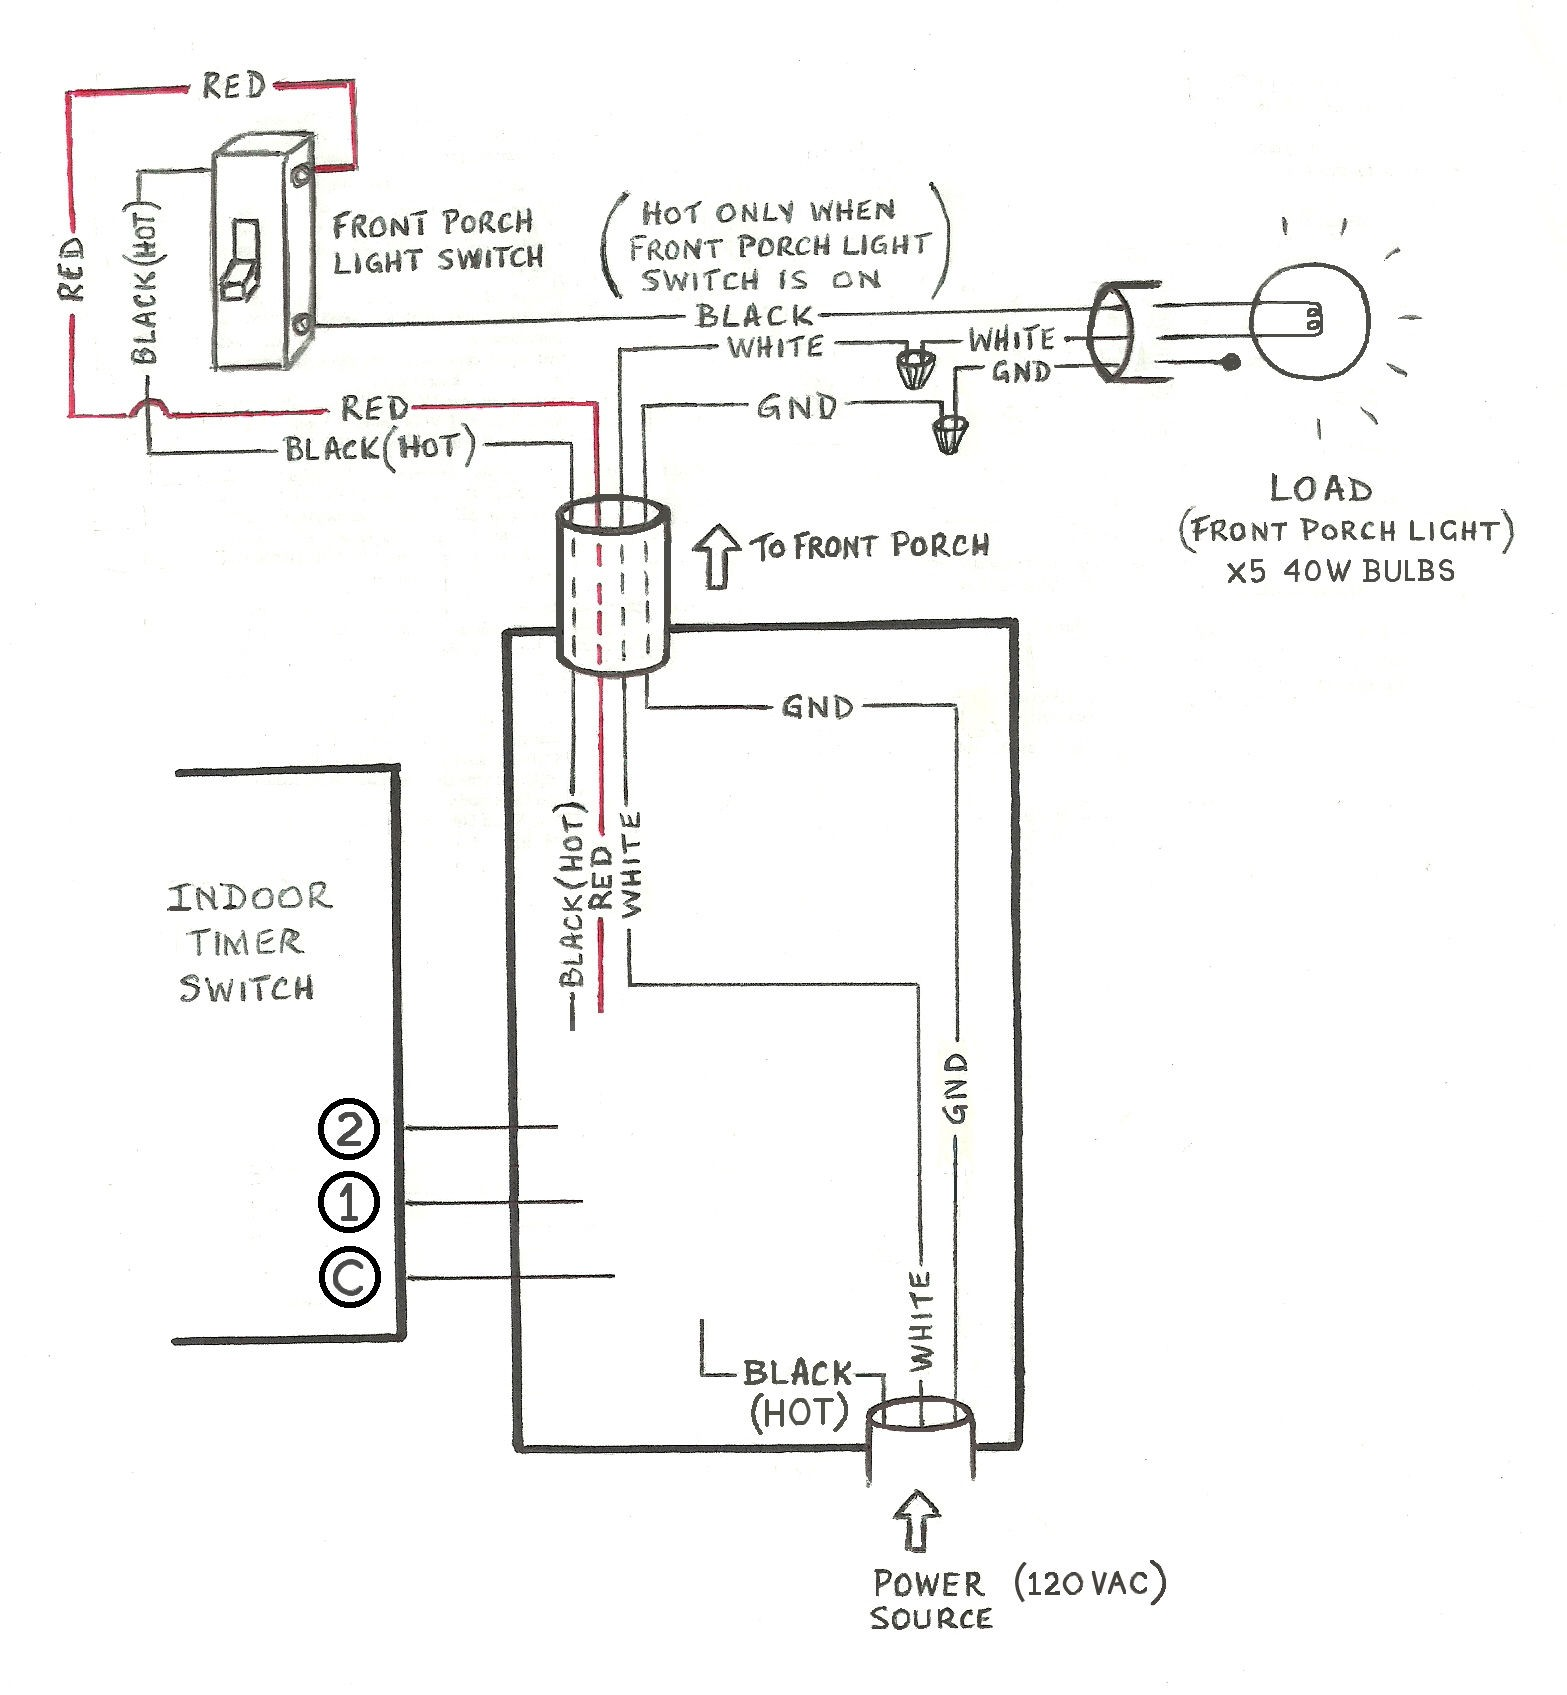 Single Pole Dimmer Switch Wiring Diagram Elegant Wiring Diagram Image - Single pole dimmer switch wiring diagram